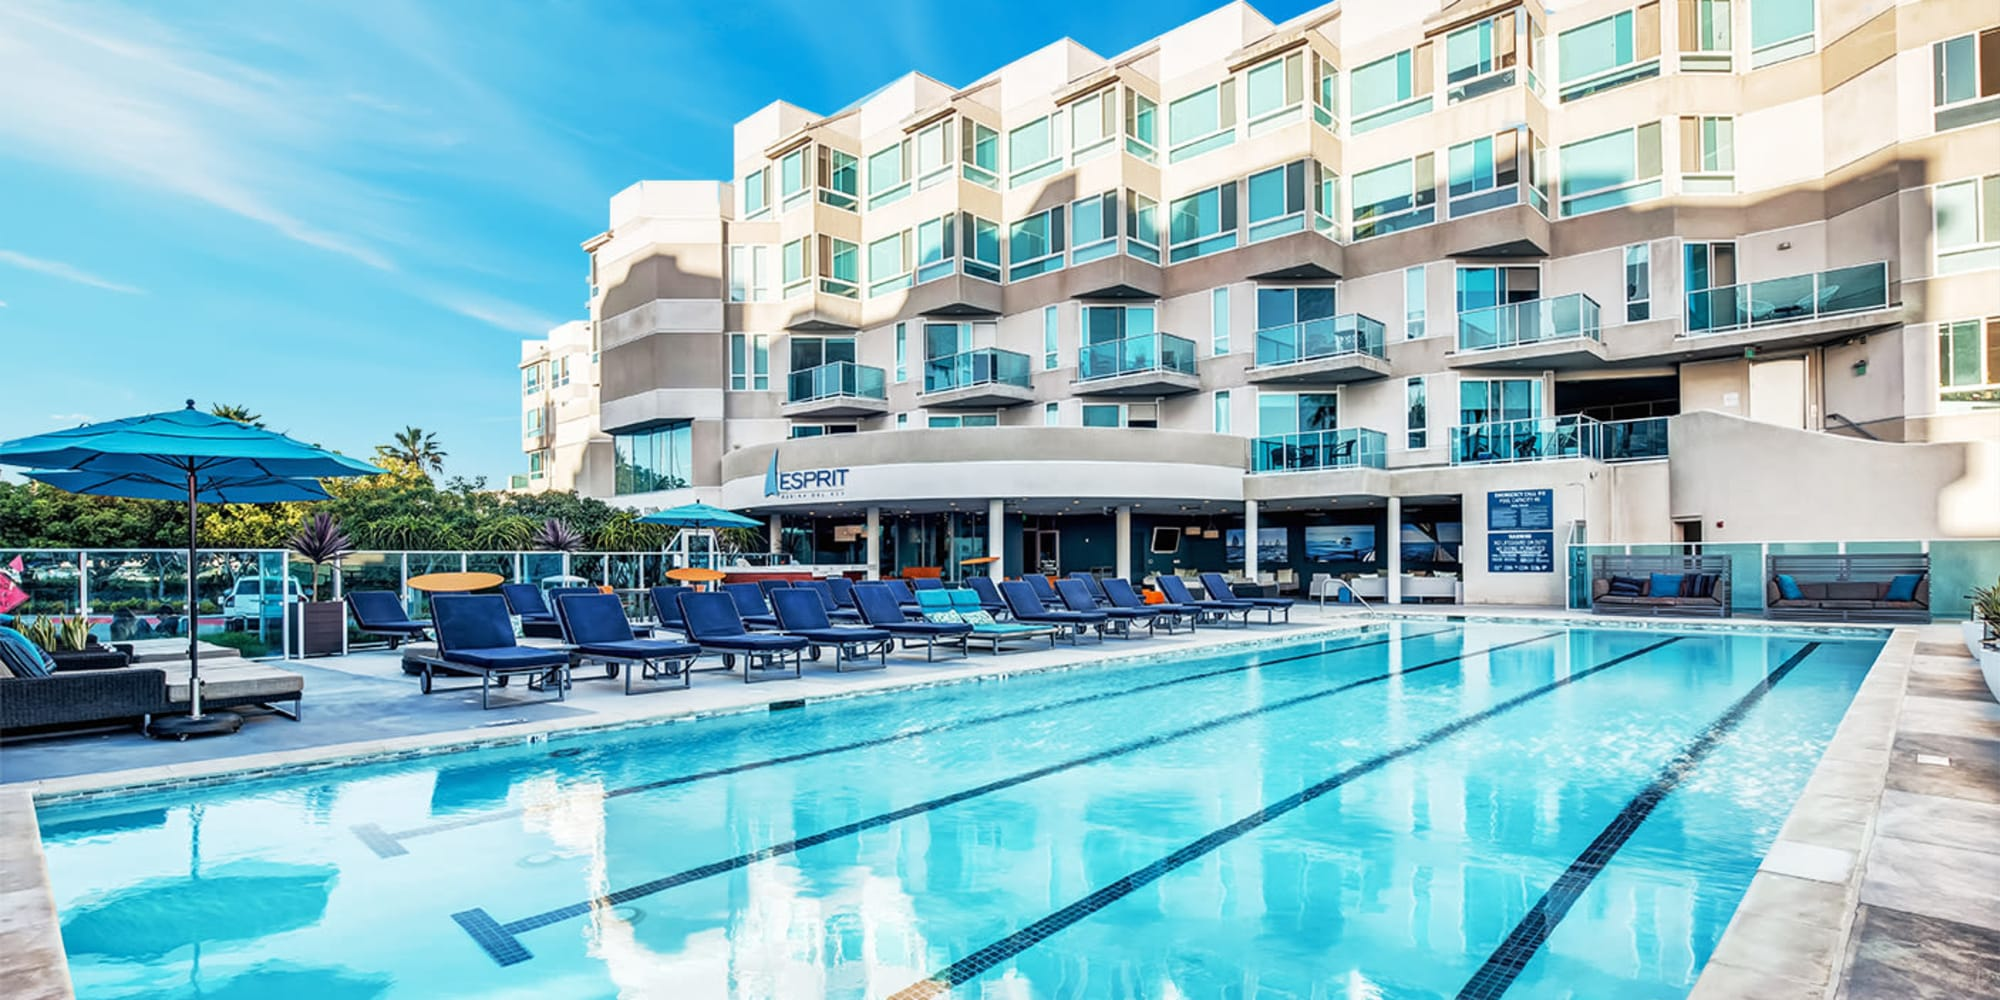 Link to a virtual tour of our community at Esprit Marina del Rey in Marina Del Rey, California